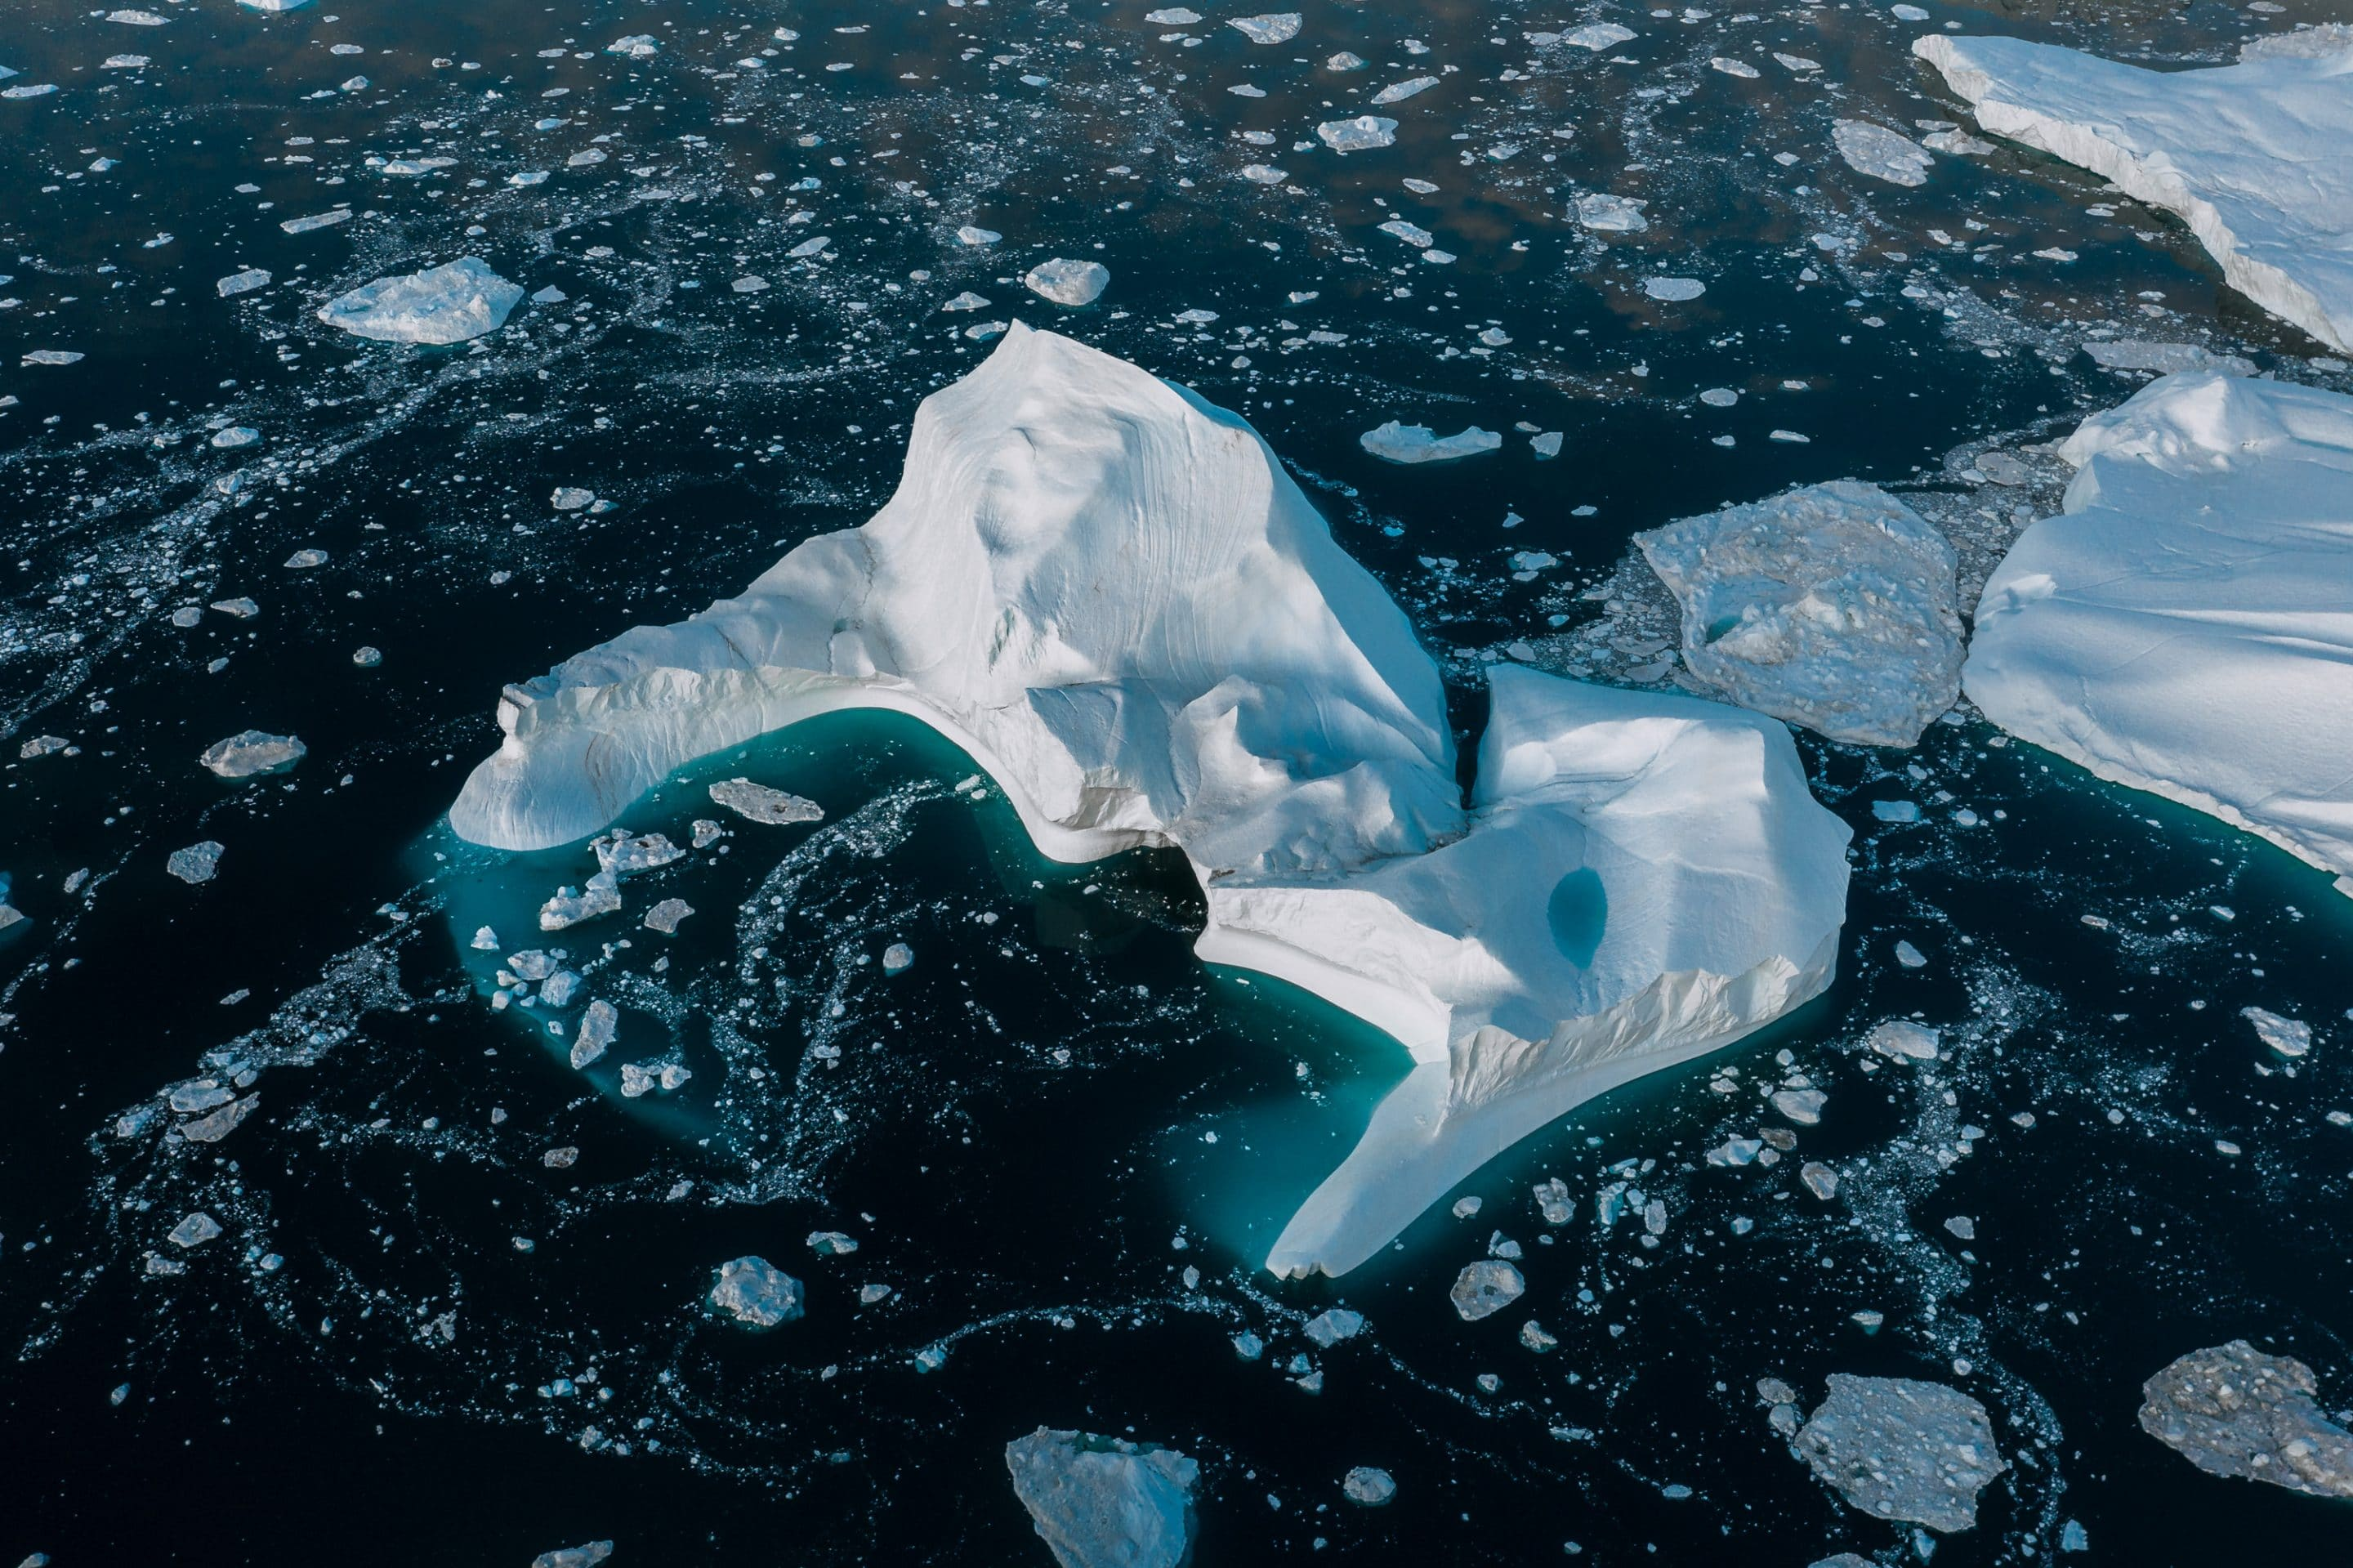 Fine Art photographer Michael Schauer captures the endlessly complex landscape of abstract shapes and forms of icebergs in the Atlantic ocean at the west Greenland coast from above with a drone